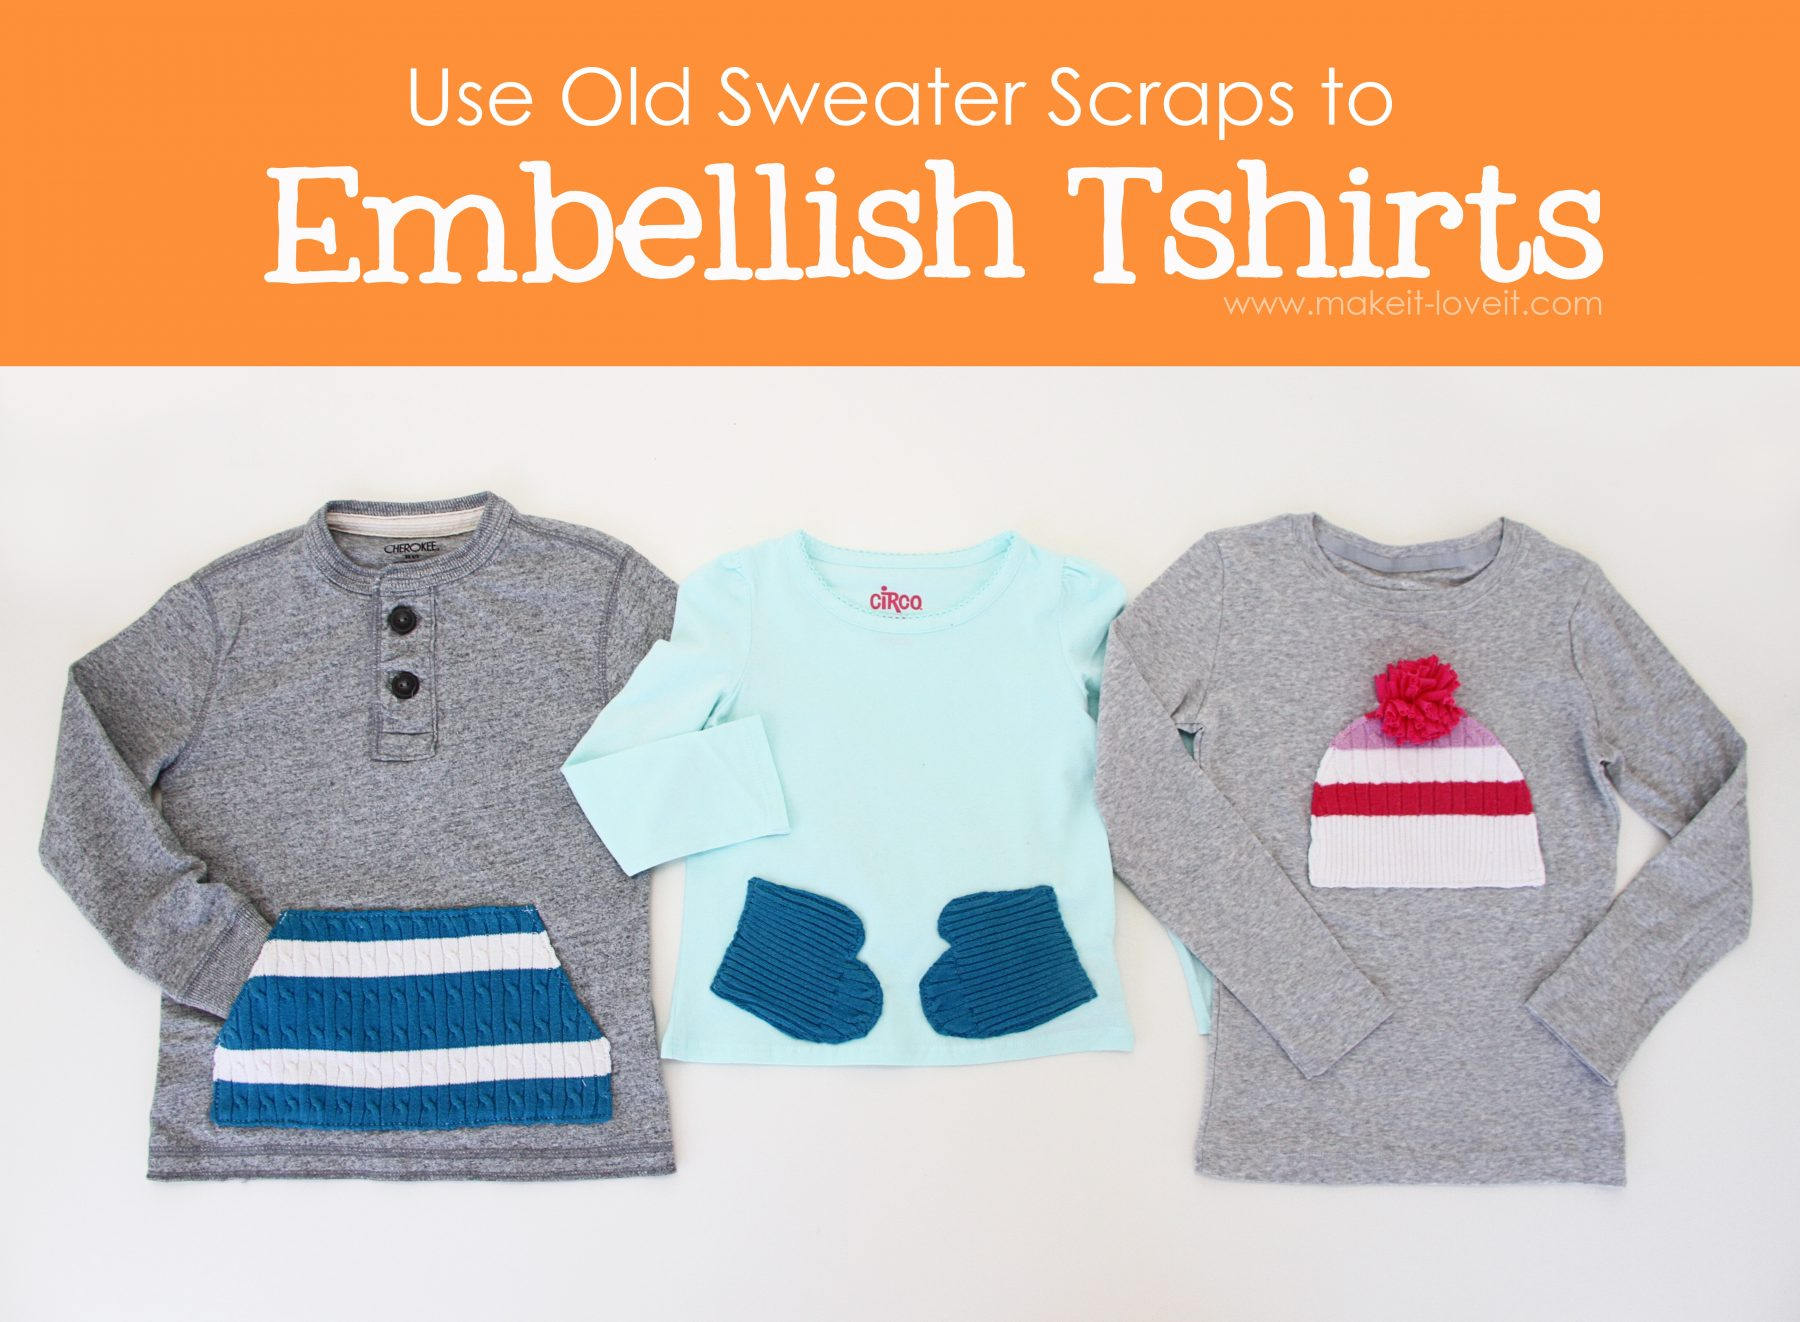 Embellish tshirts…..with old sweater scraps (or any ol' scraps, really)